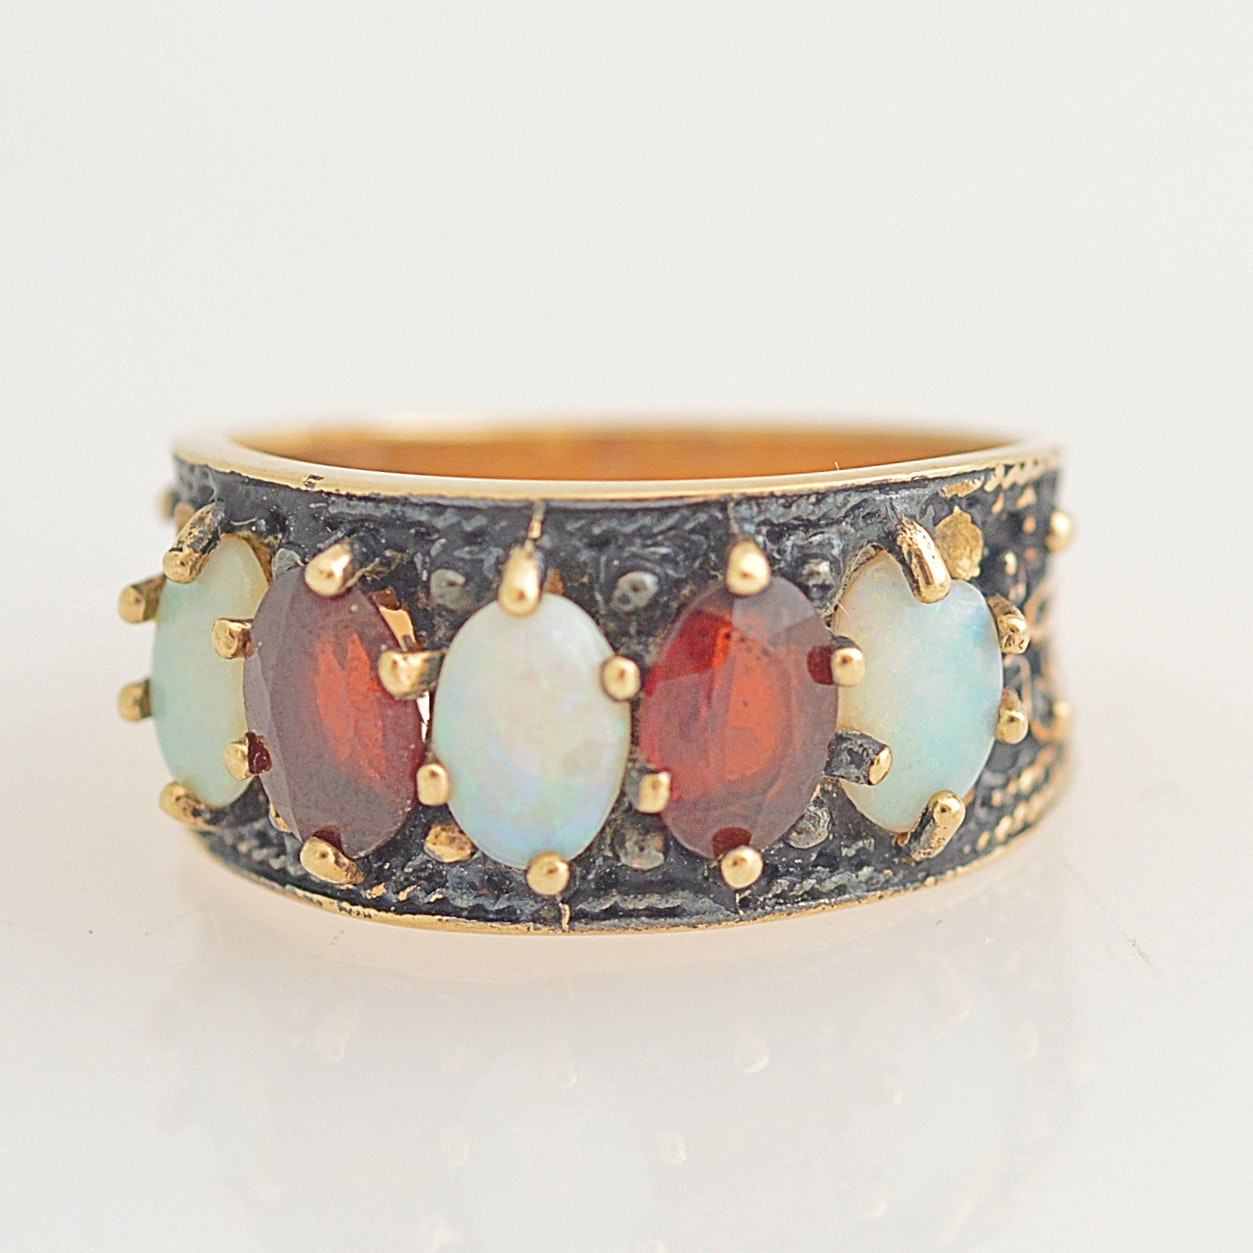 10K Yellow Gold, Garnet and Opal Ring